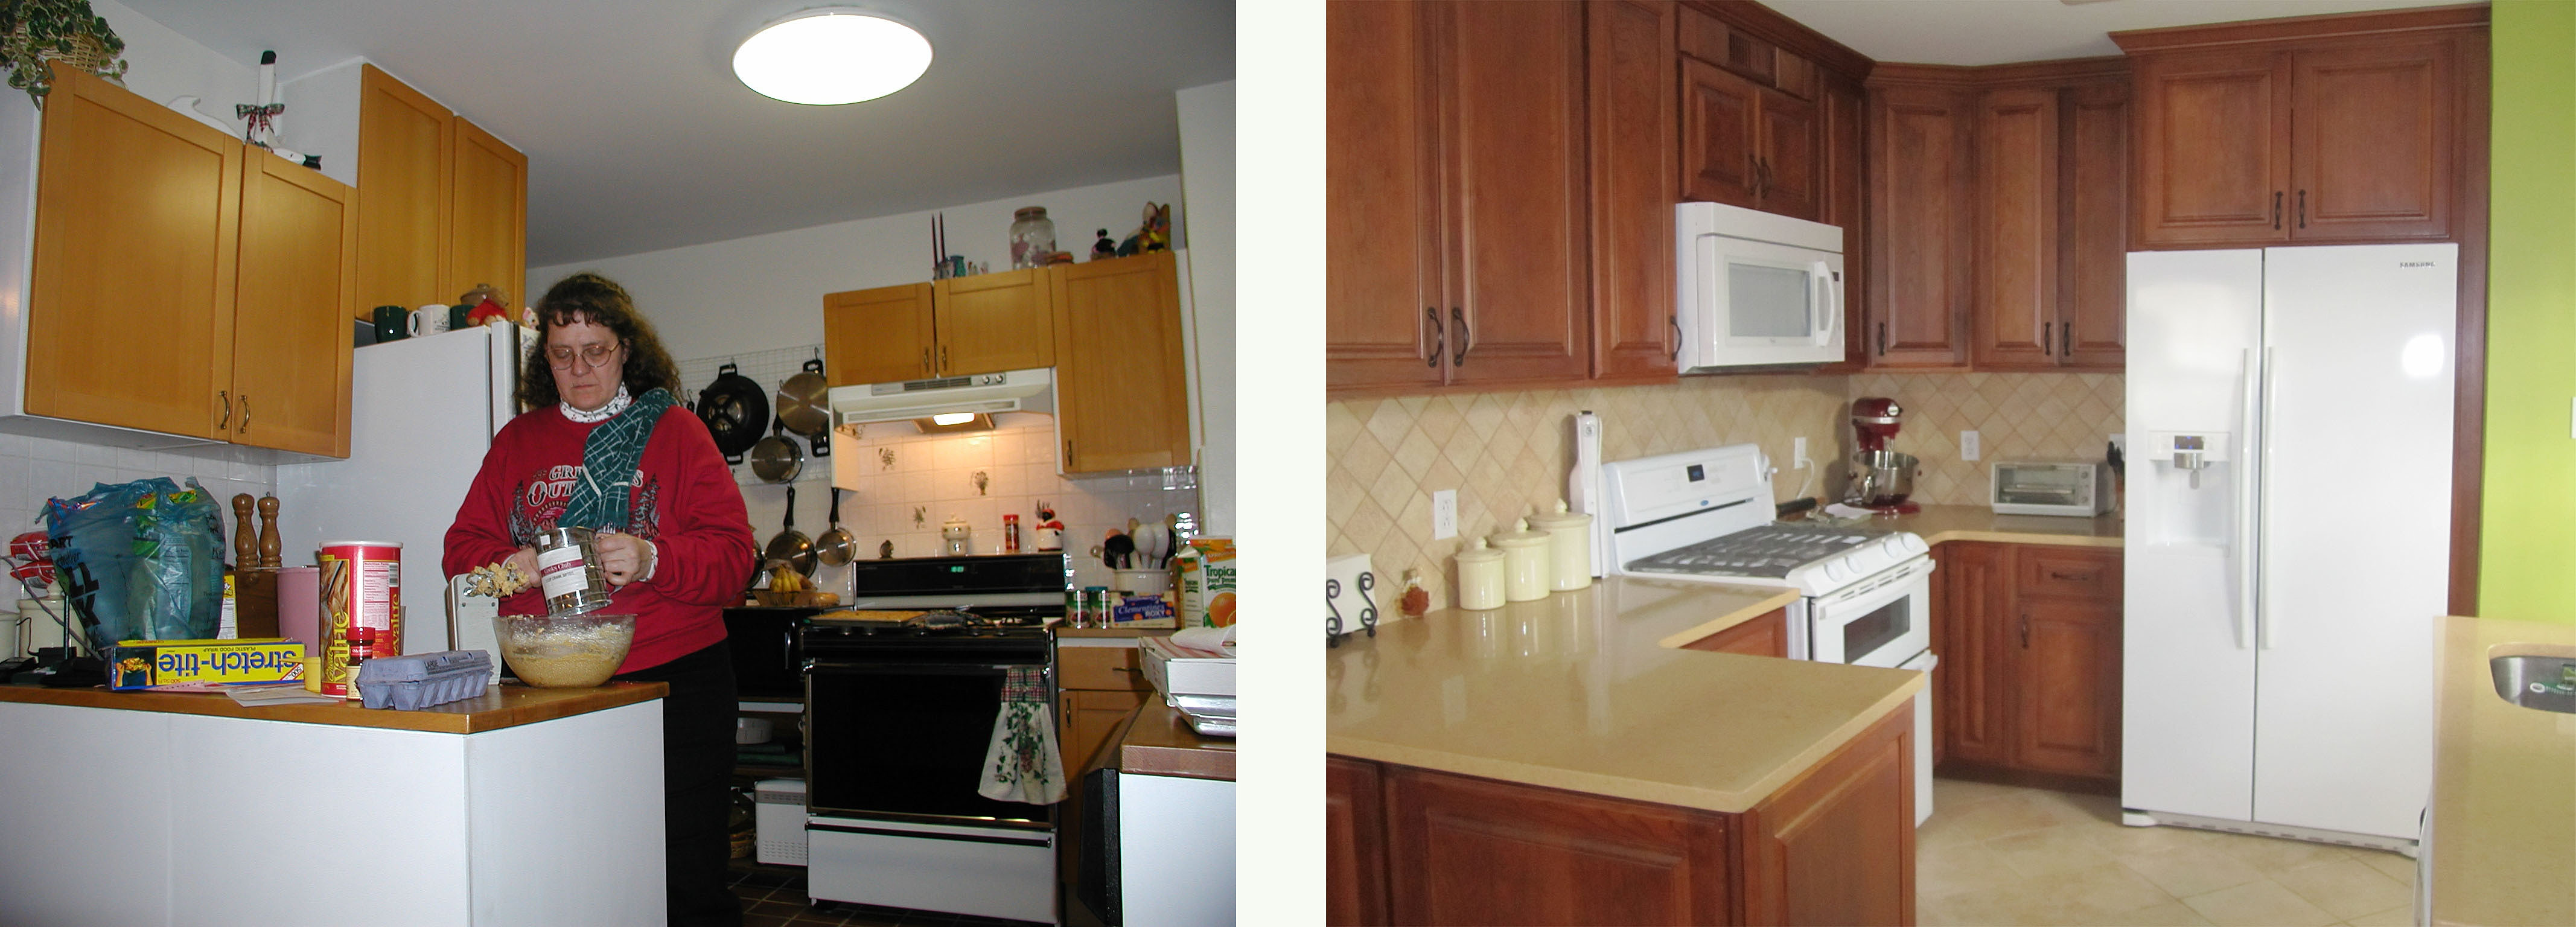 Housedrjeff Home Remodeling Handyman Home Repair Sometimes A New Kitchen Makes All Th